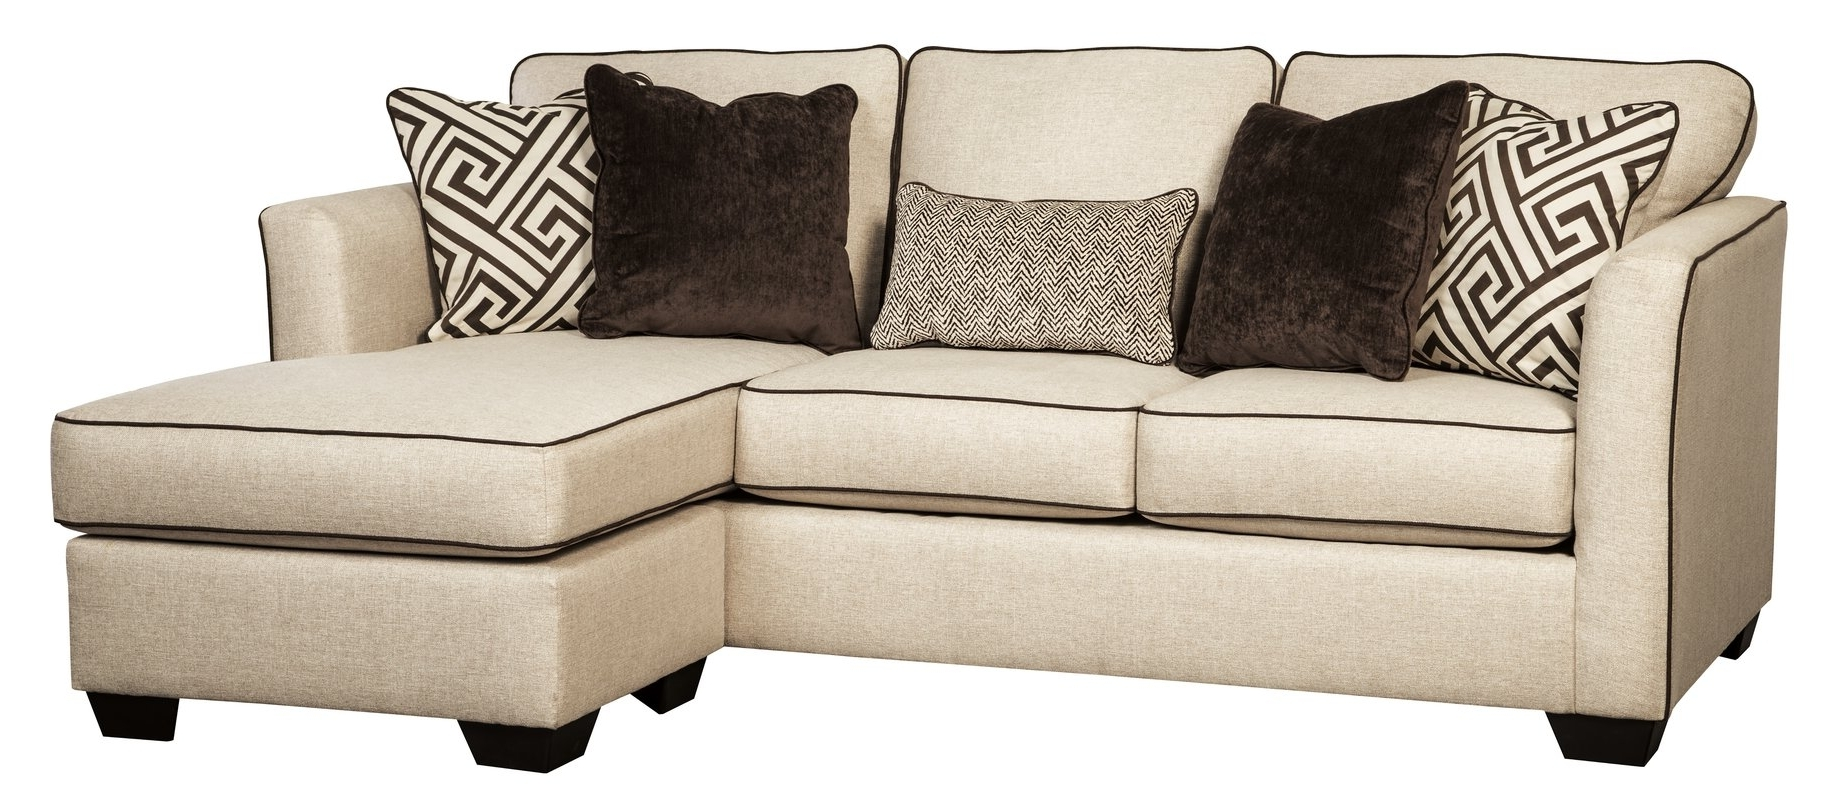 Chaise Sleeper Sofas Within Most Up To Date Benchcraft Carlinworth Sofa Chaise Sleeper & Reviews (View 2 of 15)